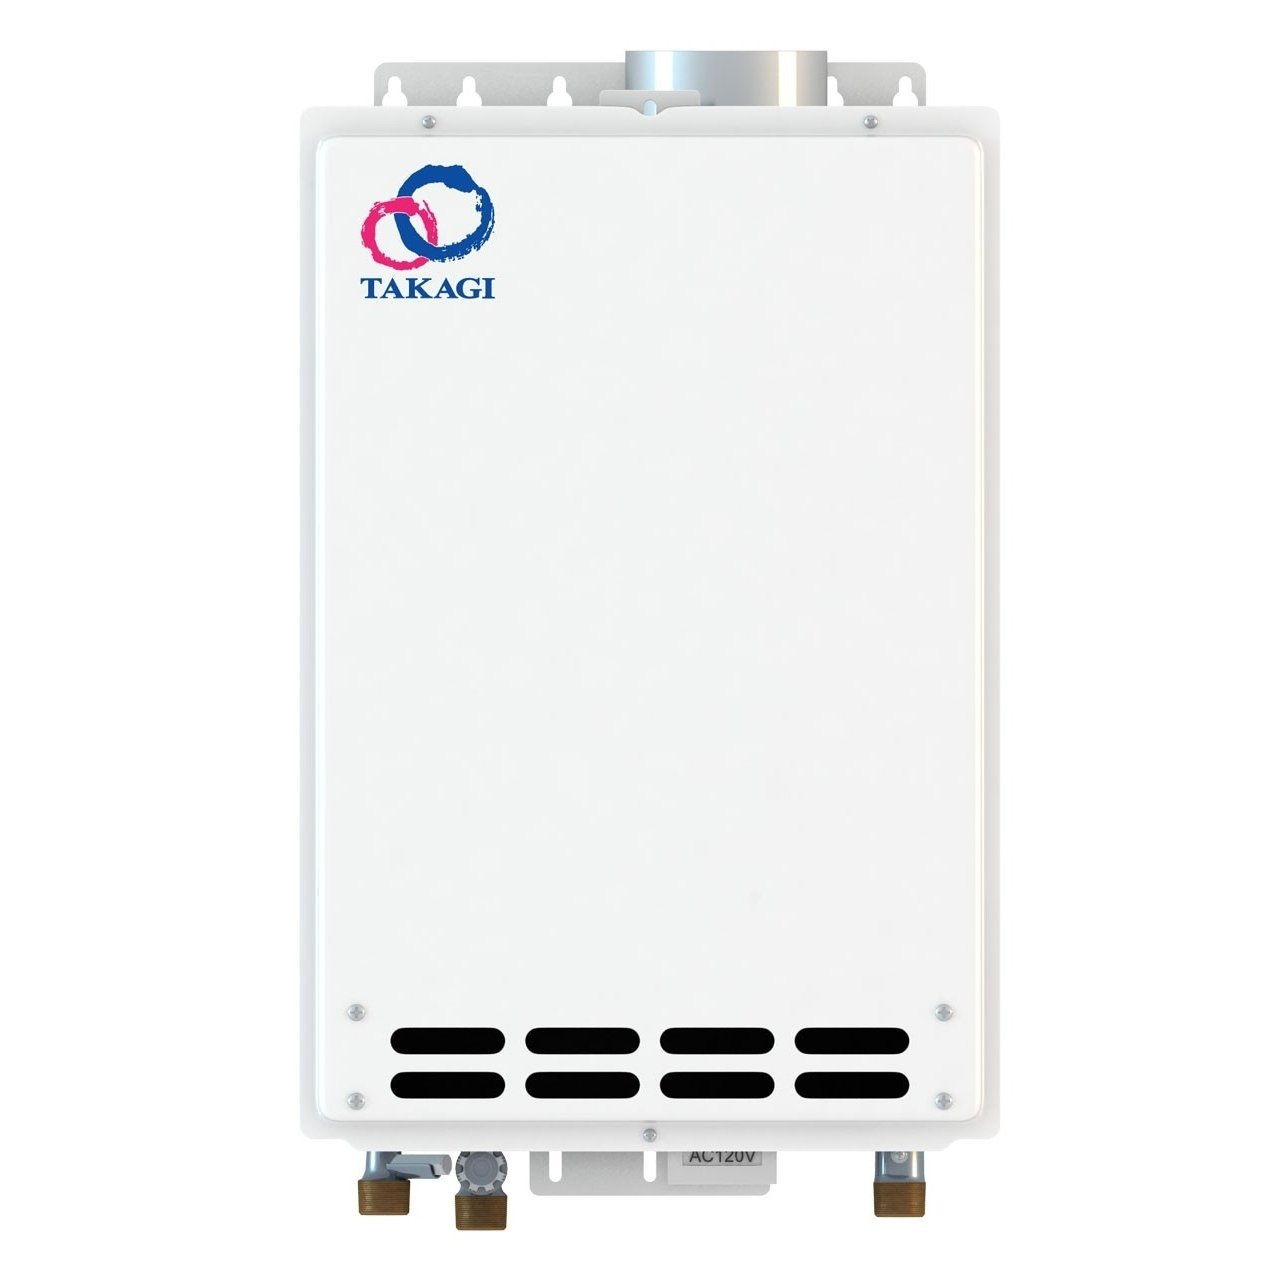 Takagi T-KJr2-IN-NG Indoor Tankless Water Heater